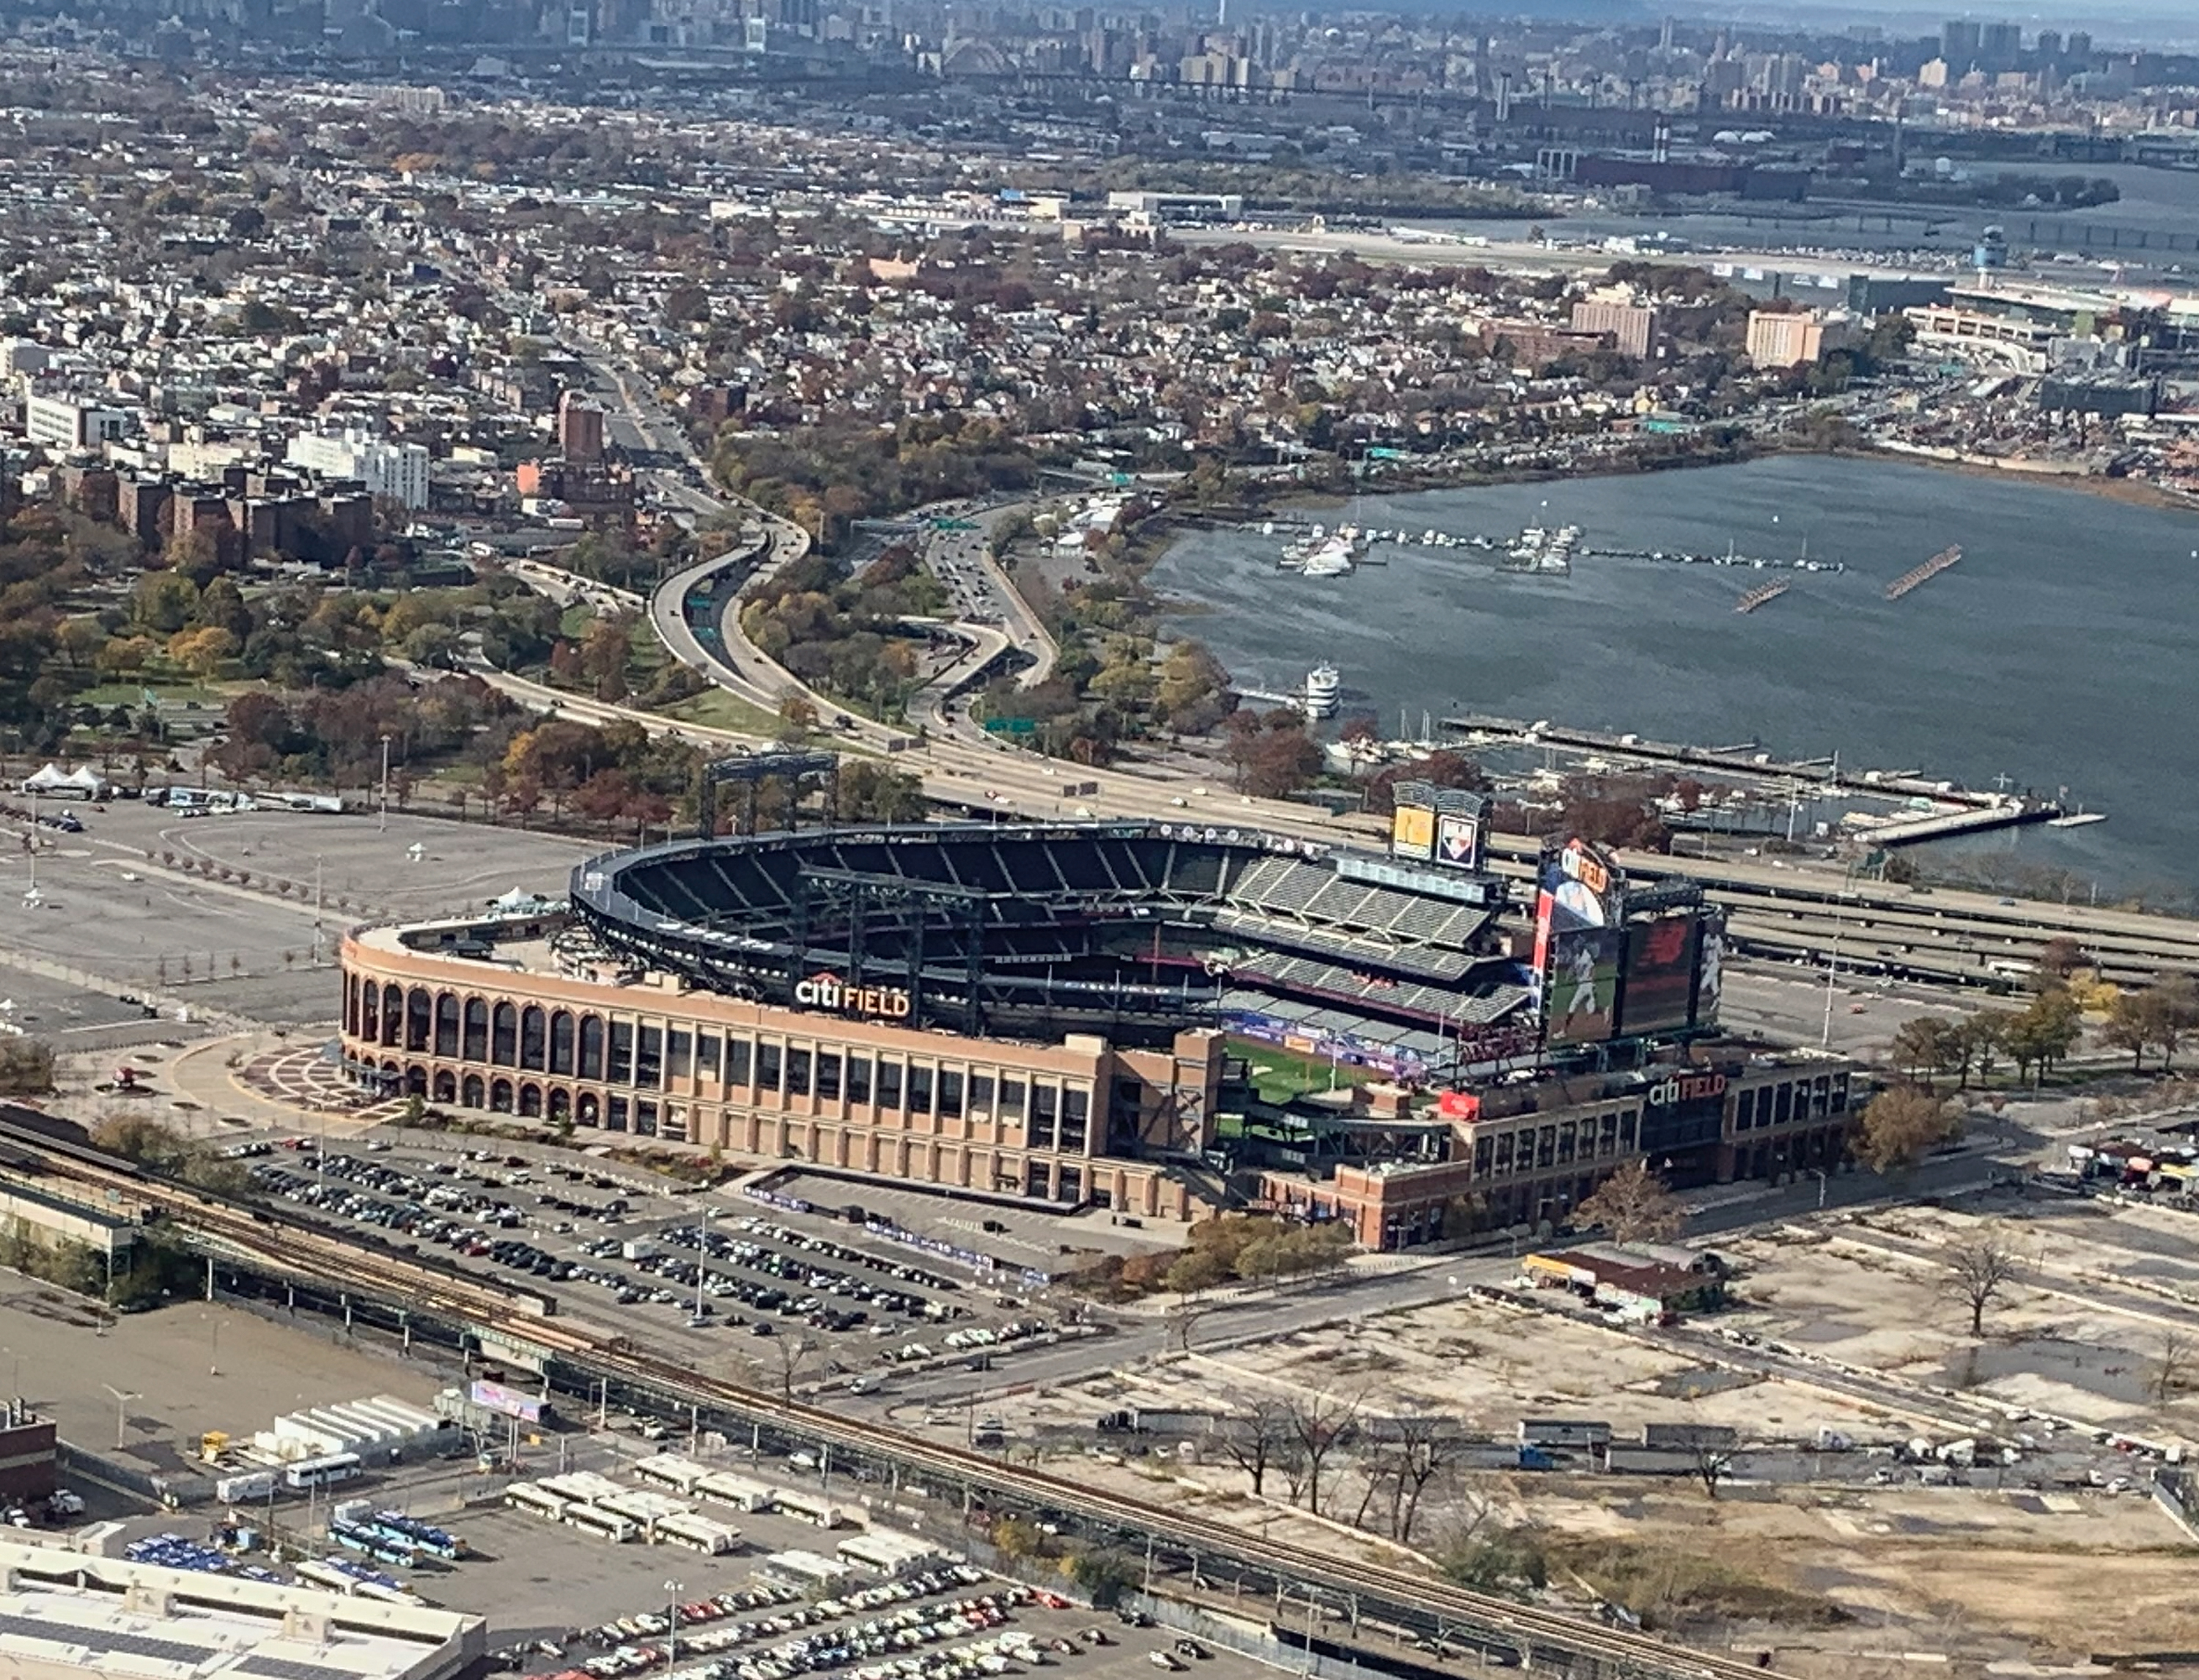 Aerial Views of the New York Area